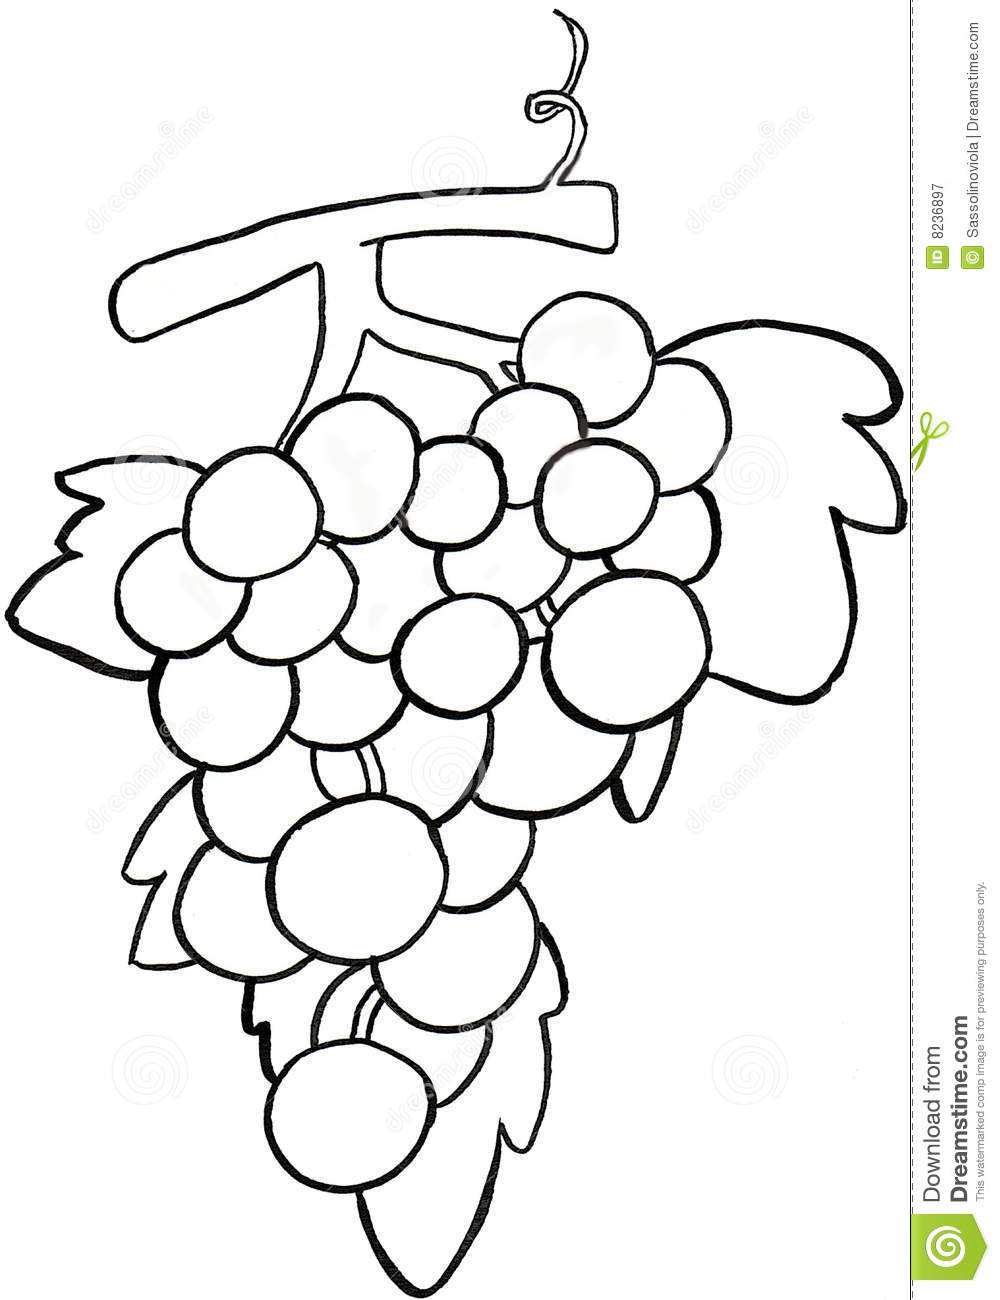 Bunch of grapes clipart black and white picture free White Grapes Cliparts | Free download best White Grapes Cliparts on ... picture free